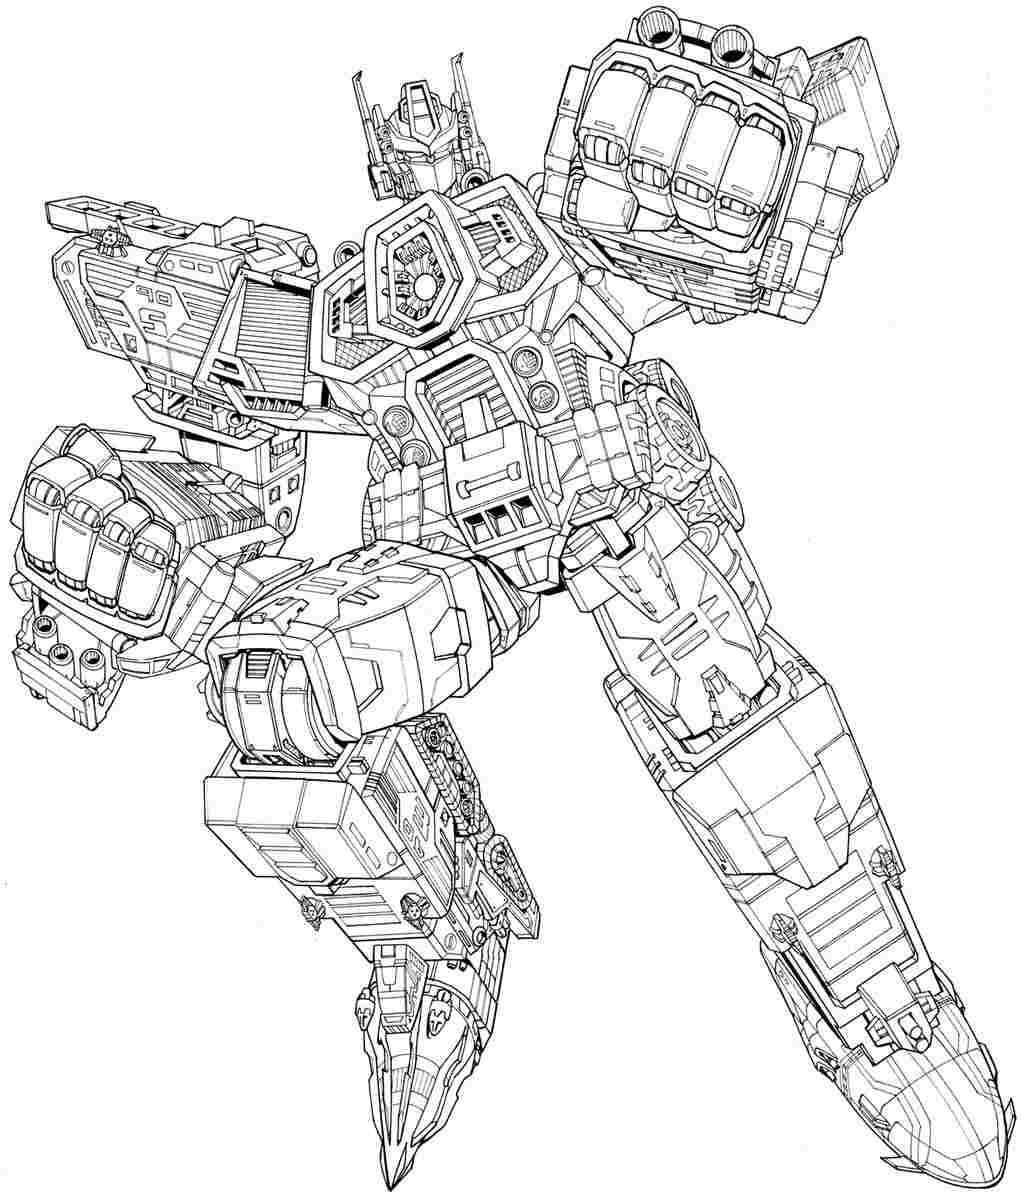 Printable Free Coloring Pages The Transformers Movie For Girls & Boys